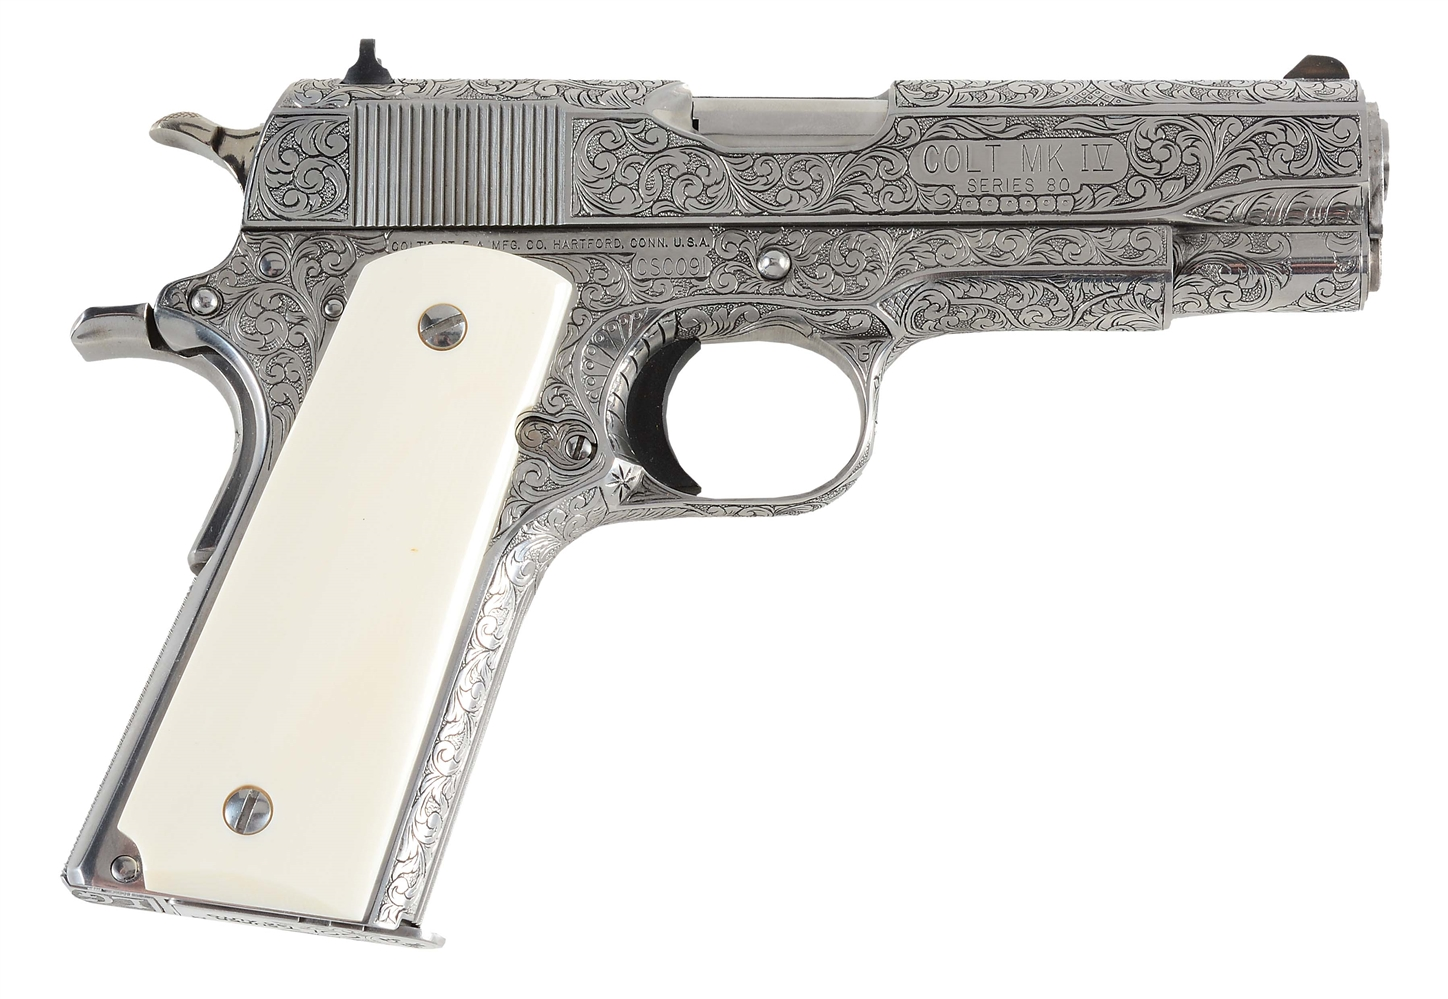 (M) MASTER ENGRAVED COLT SUPER COMMANDER .38 SUPER SEMI-AUTOMATIC PISTOL.